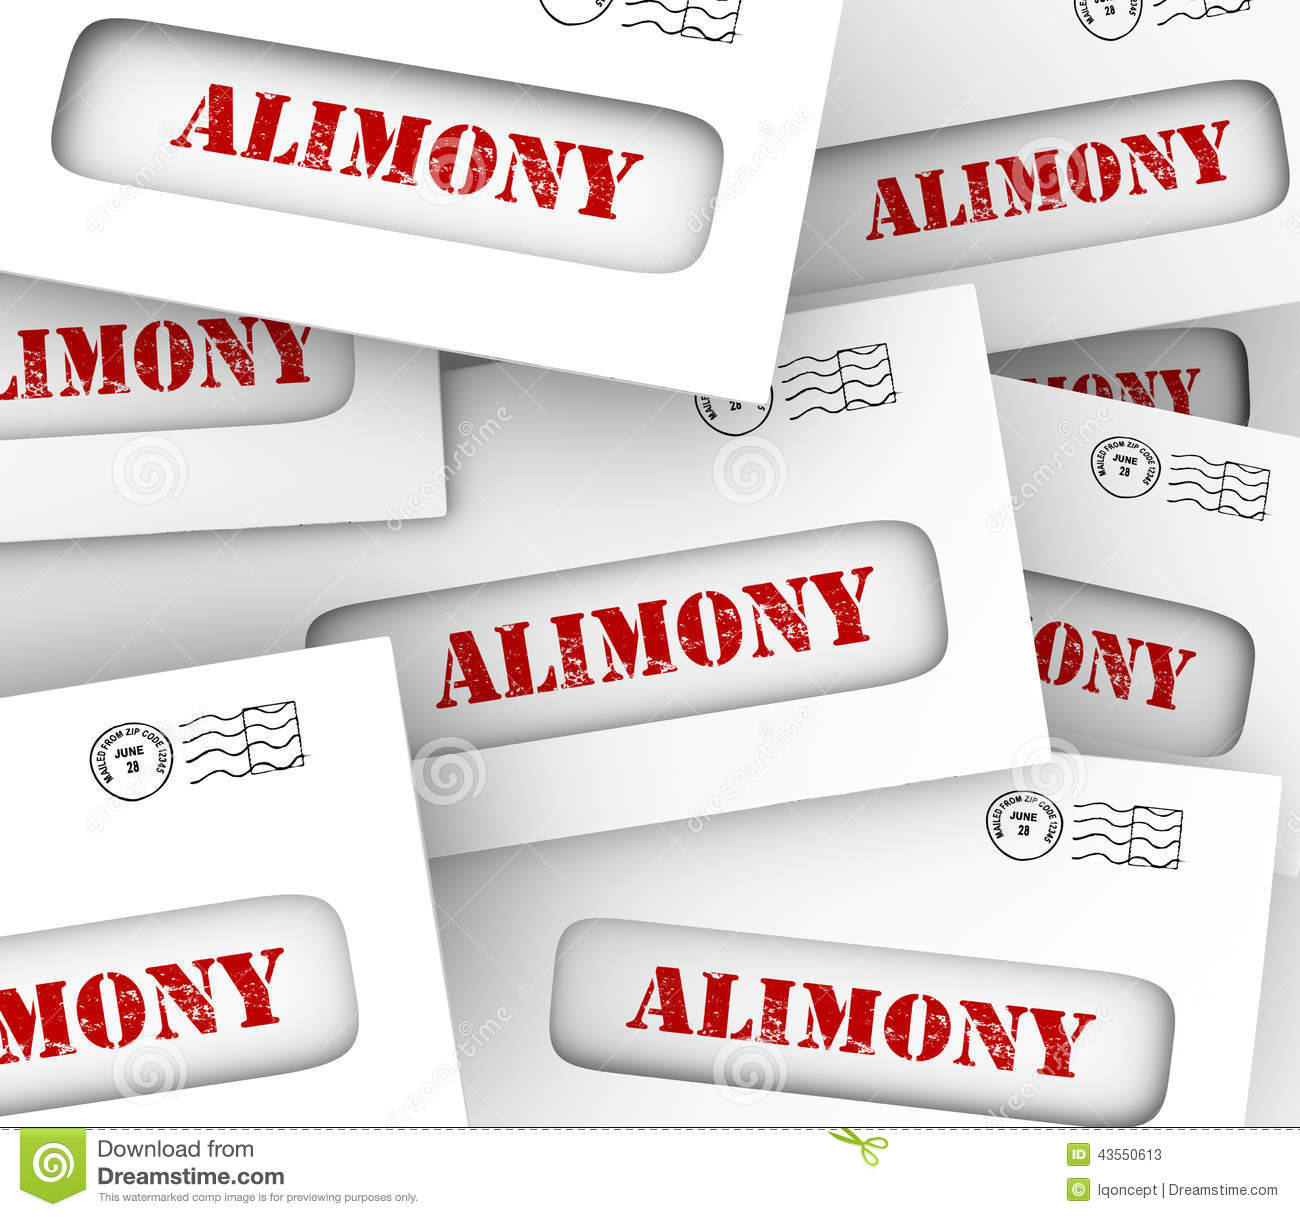 Alimony & Spousal Support in Spring, TX